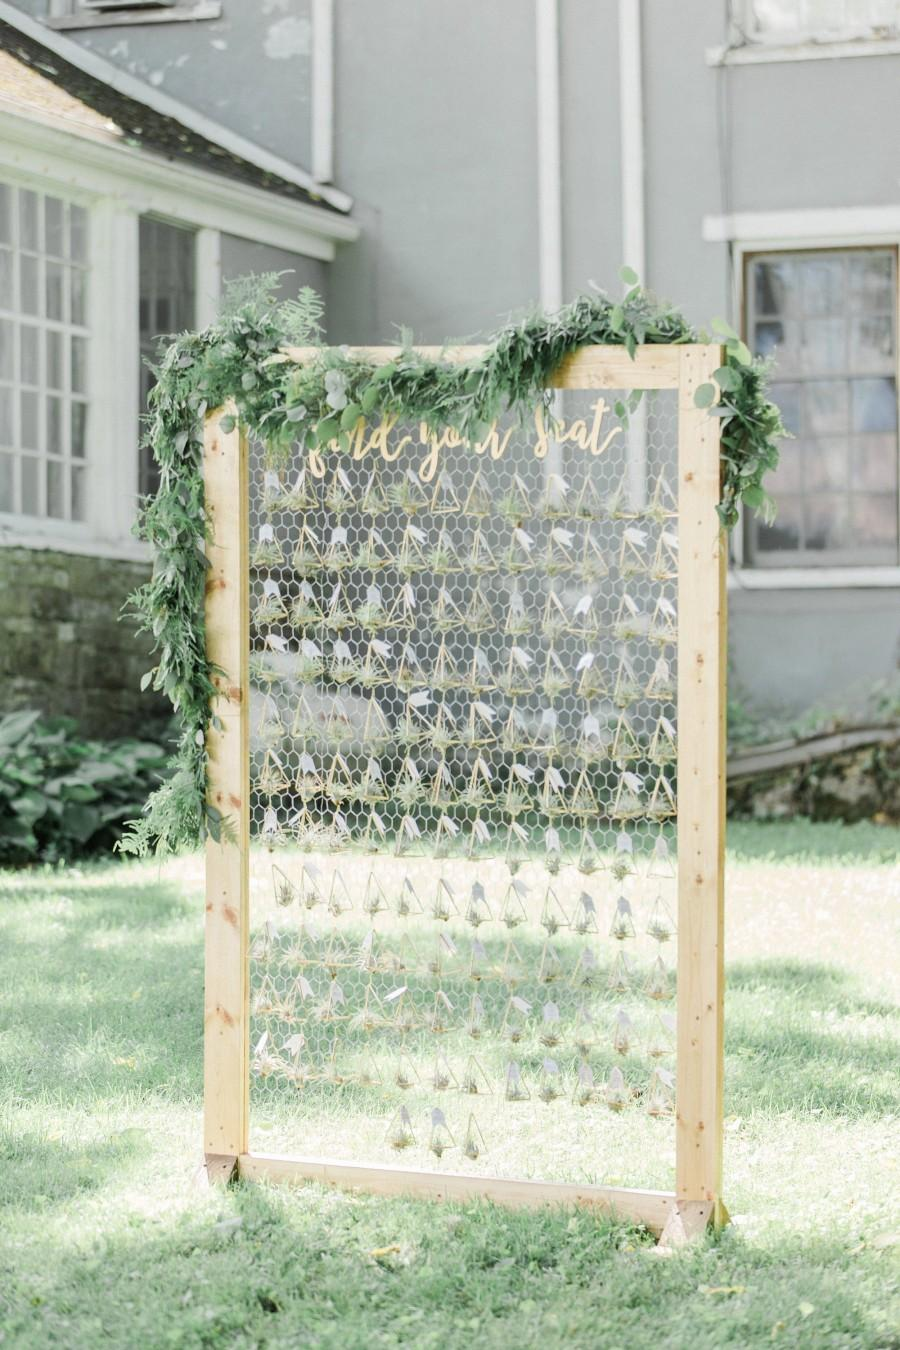 زفاف - Find Your Seat Escort Card Sign Letters Wooden Cutout Words for Escort Place Cards Display Sign Wedding Reception Decoration (Item - FYS200)